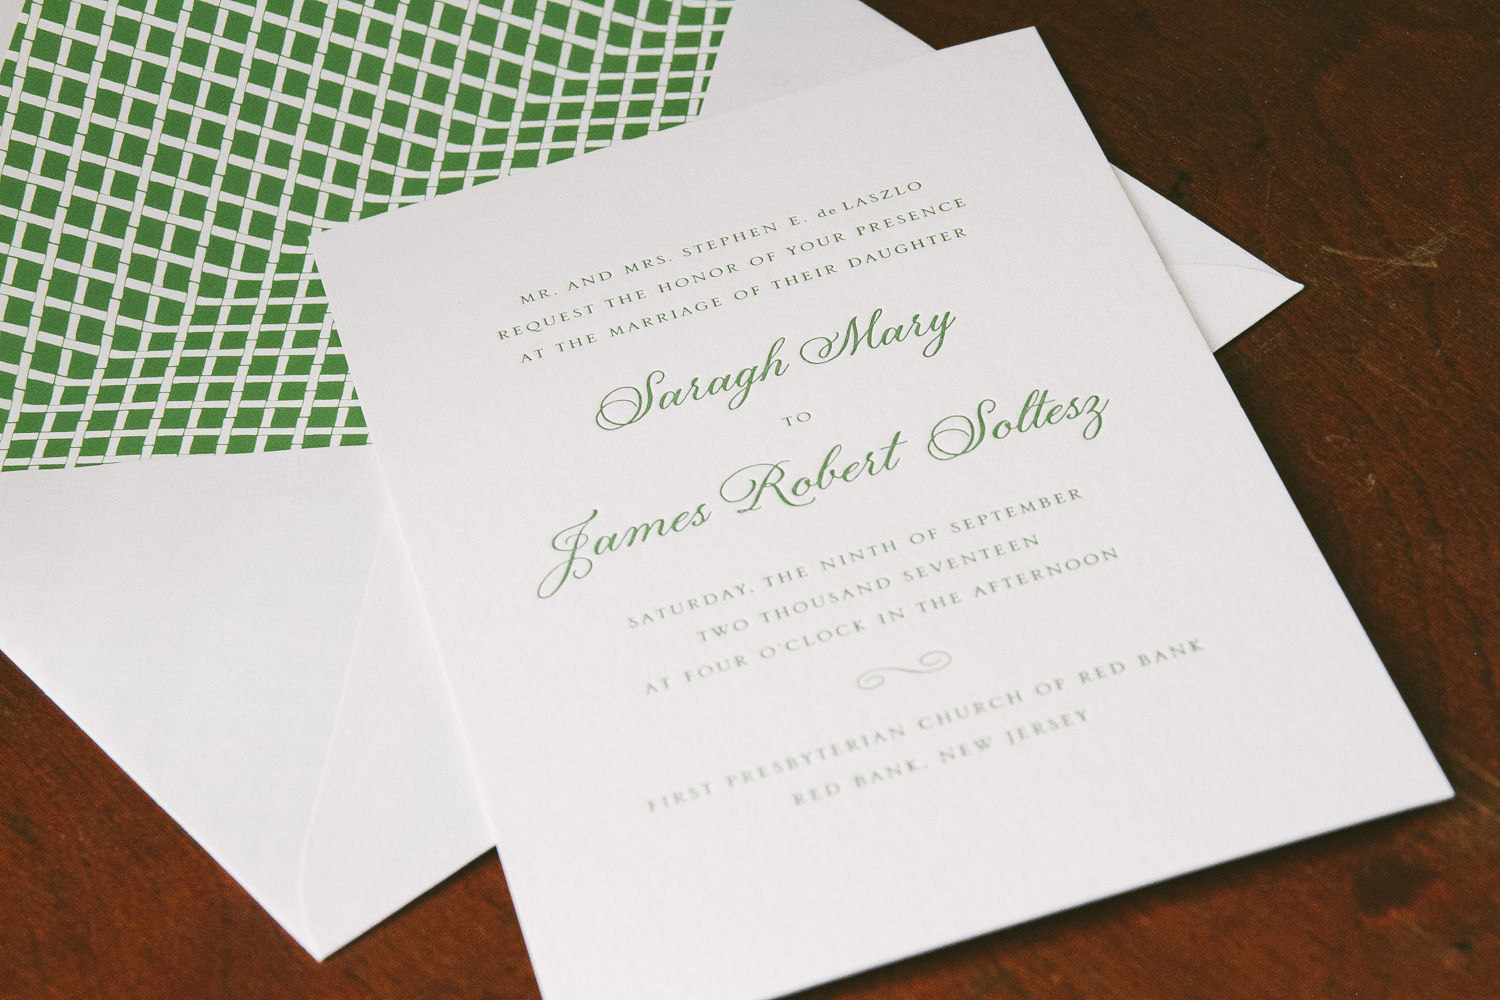 Sophisticated letterpress wedding invitations from Smock